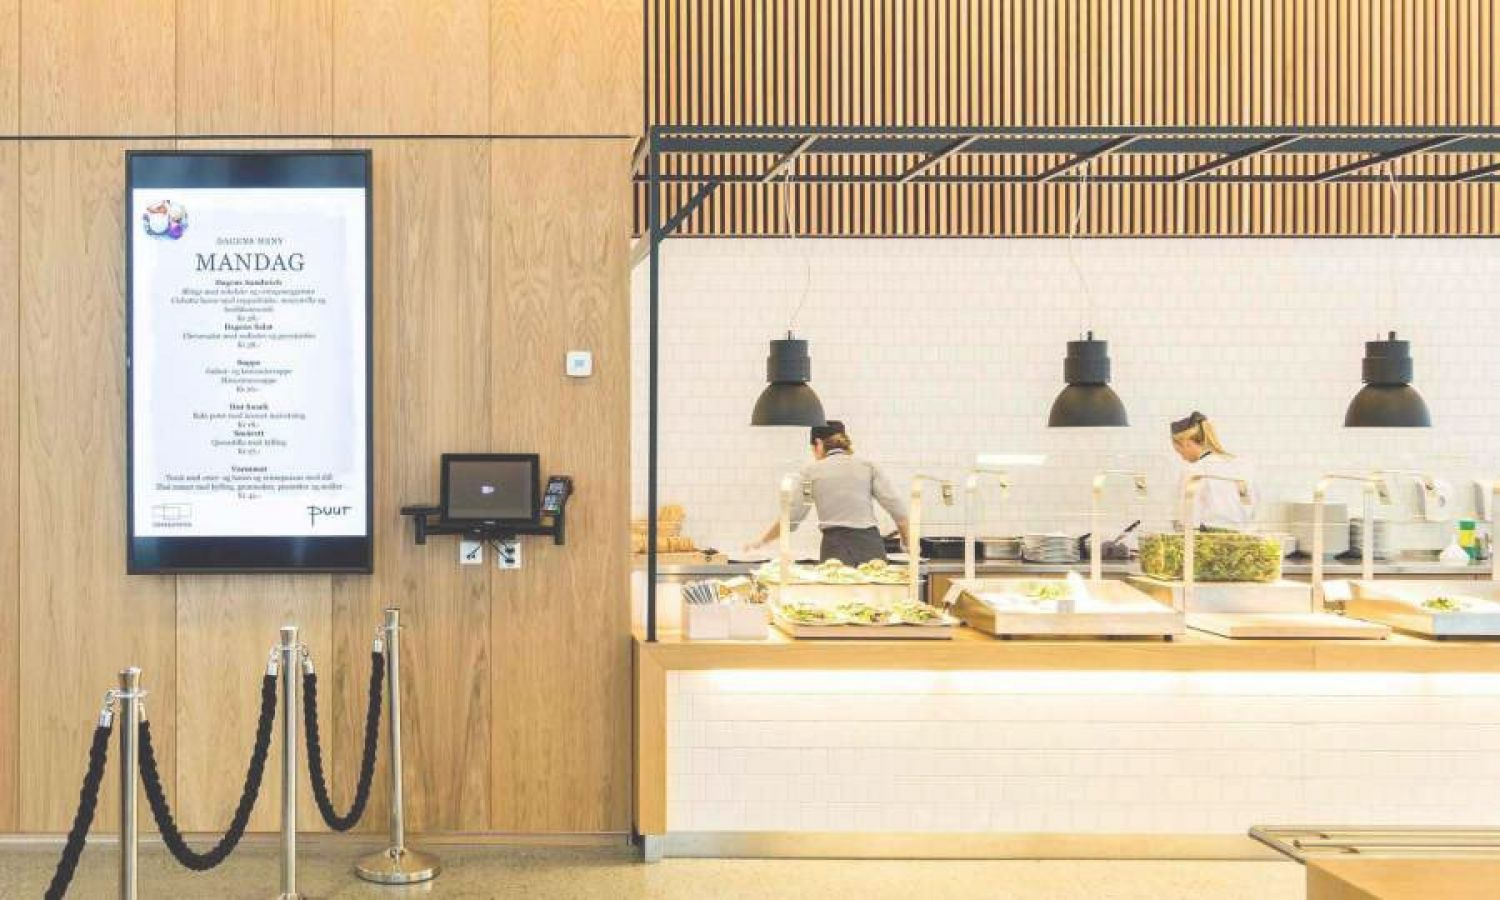 Be creative with digital signage